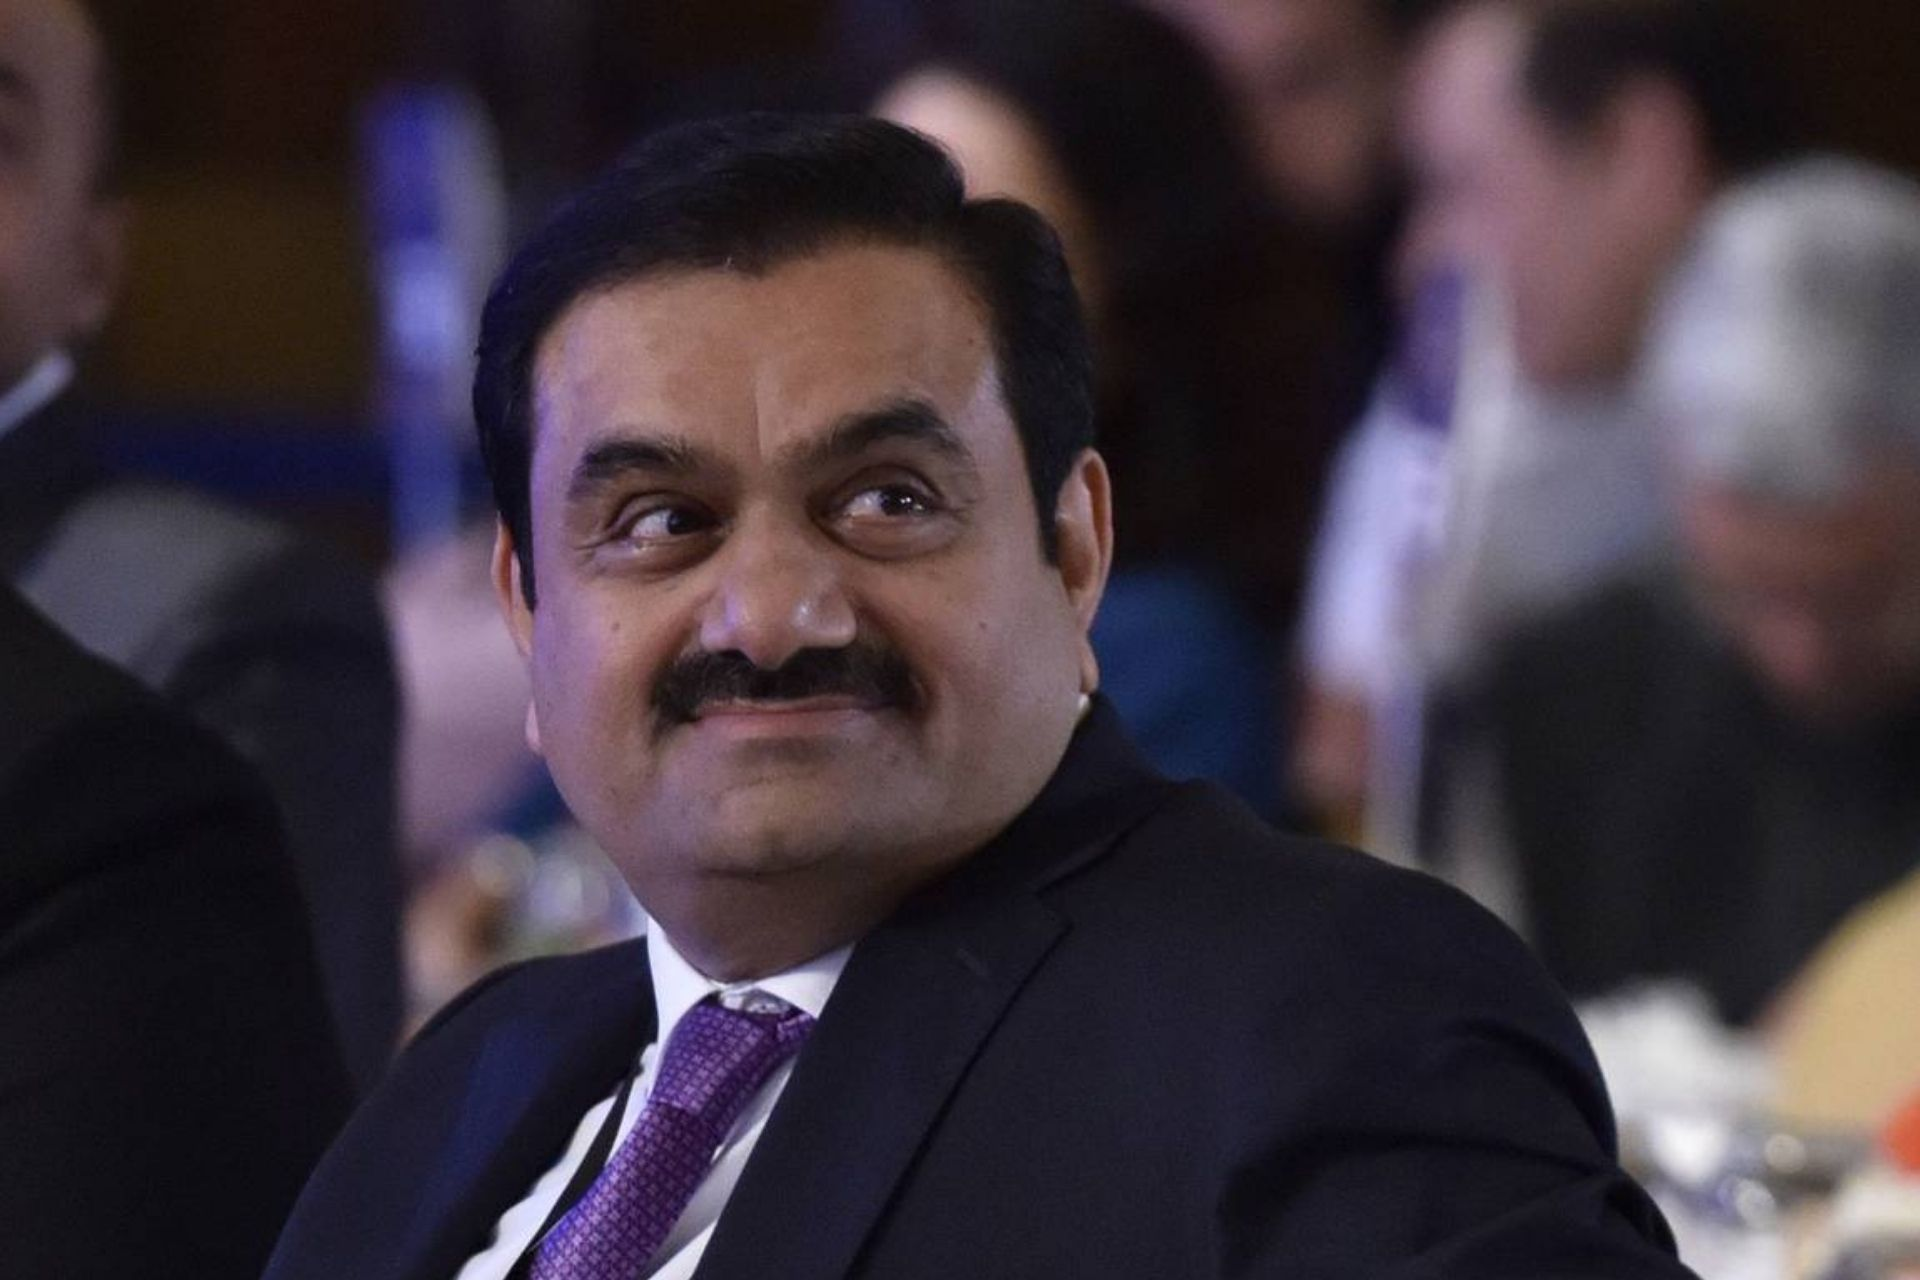 Billionaire Gautam Adani's companies fall for the second day in a row as a result of the SEBI probe